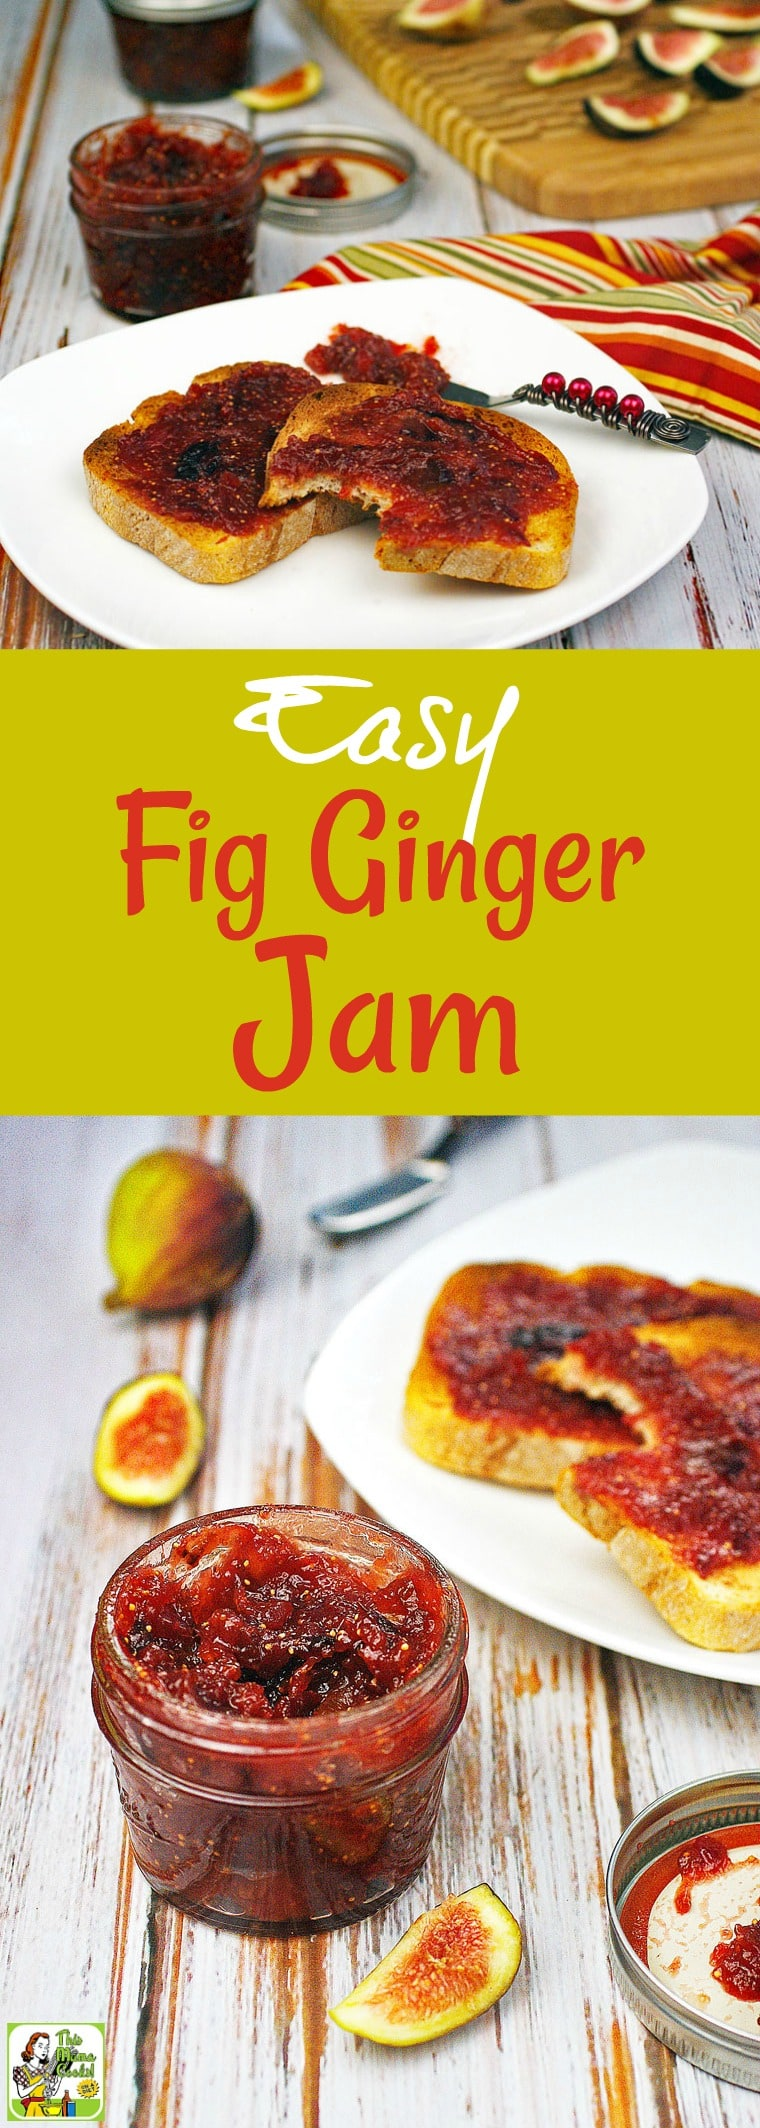 How to make an Easy Fig Ginger Jam recipe | This Mama ...